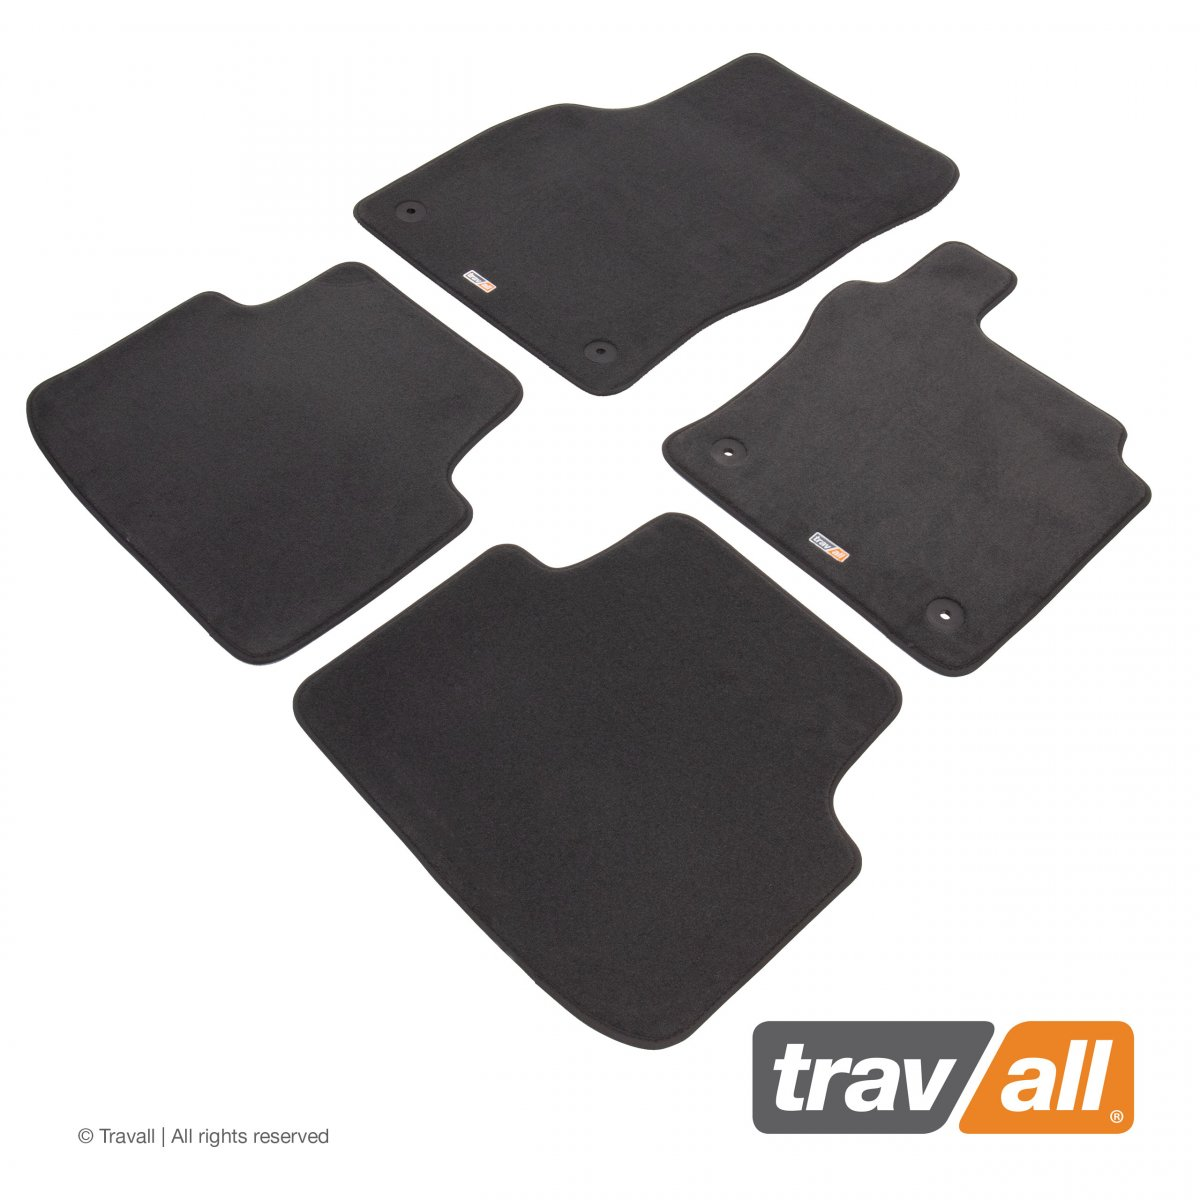 Travall® Mats Urban Edition [RHD] TCM1072DGR-Luxury car mat footwell protection for VOLKSWAGEN PASSAT SALOON / ESTATE (2014-)